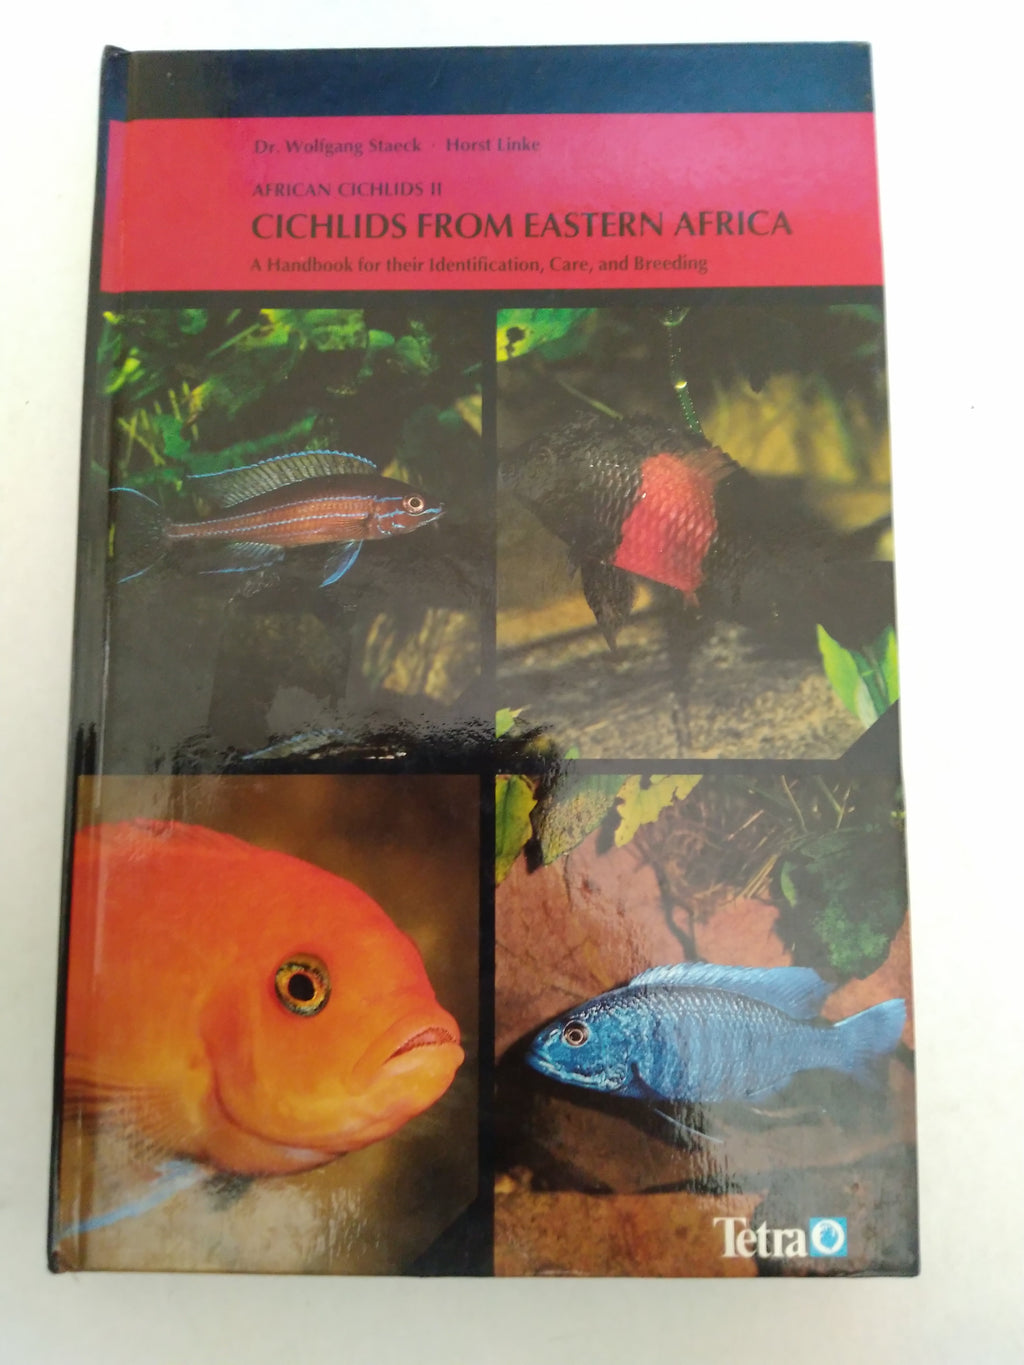 African Cichlids II: Cichlids from Eastern Africa : A Handbook for Their Identification, Care and Breeding by Wolfgang Staeck & Horst Linke